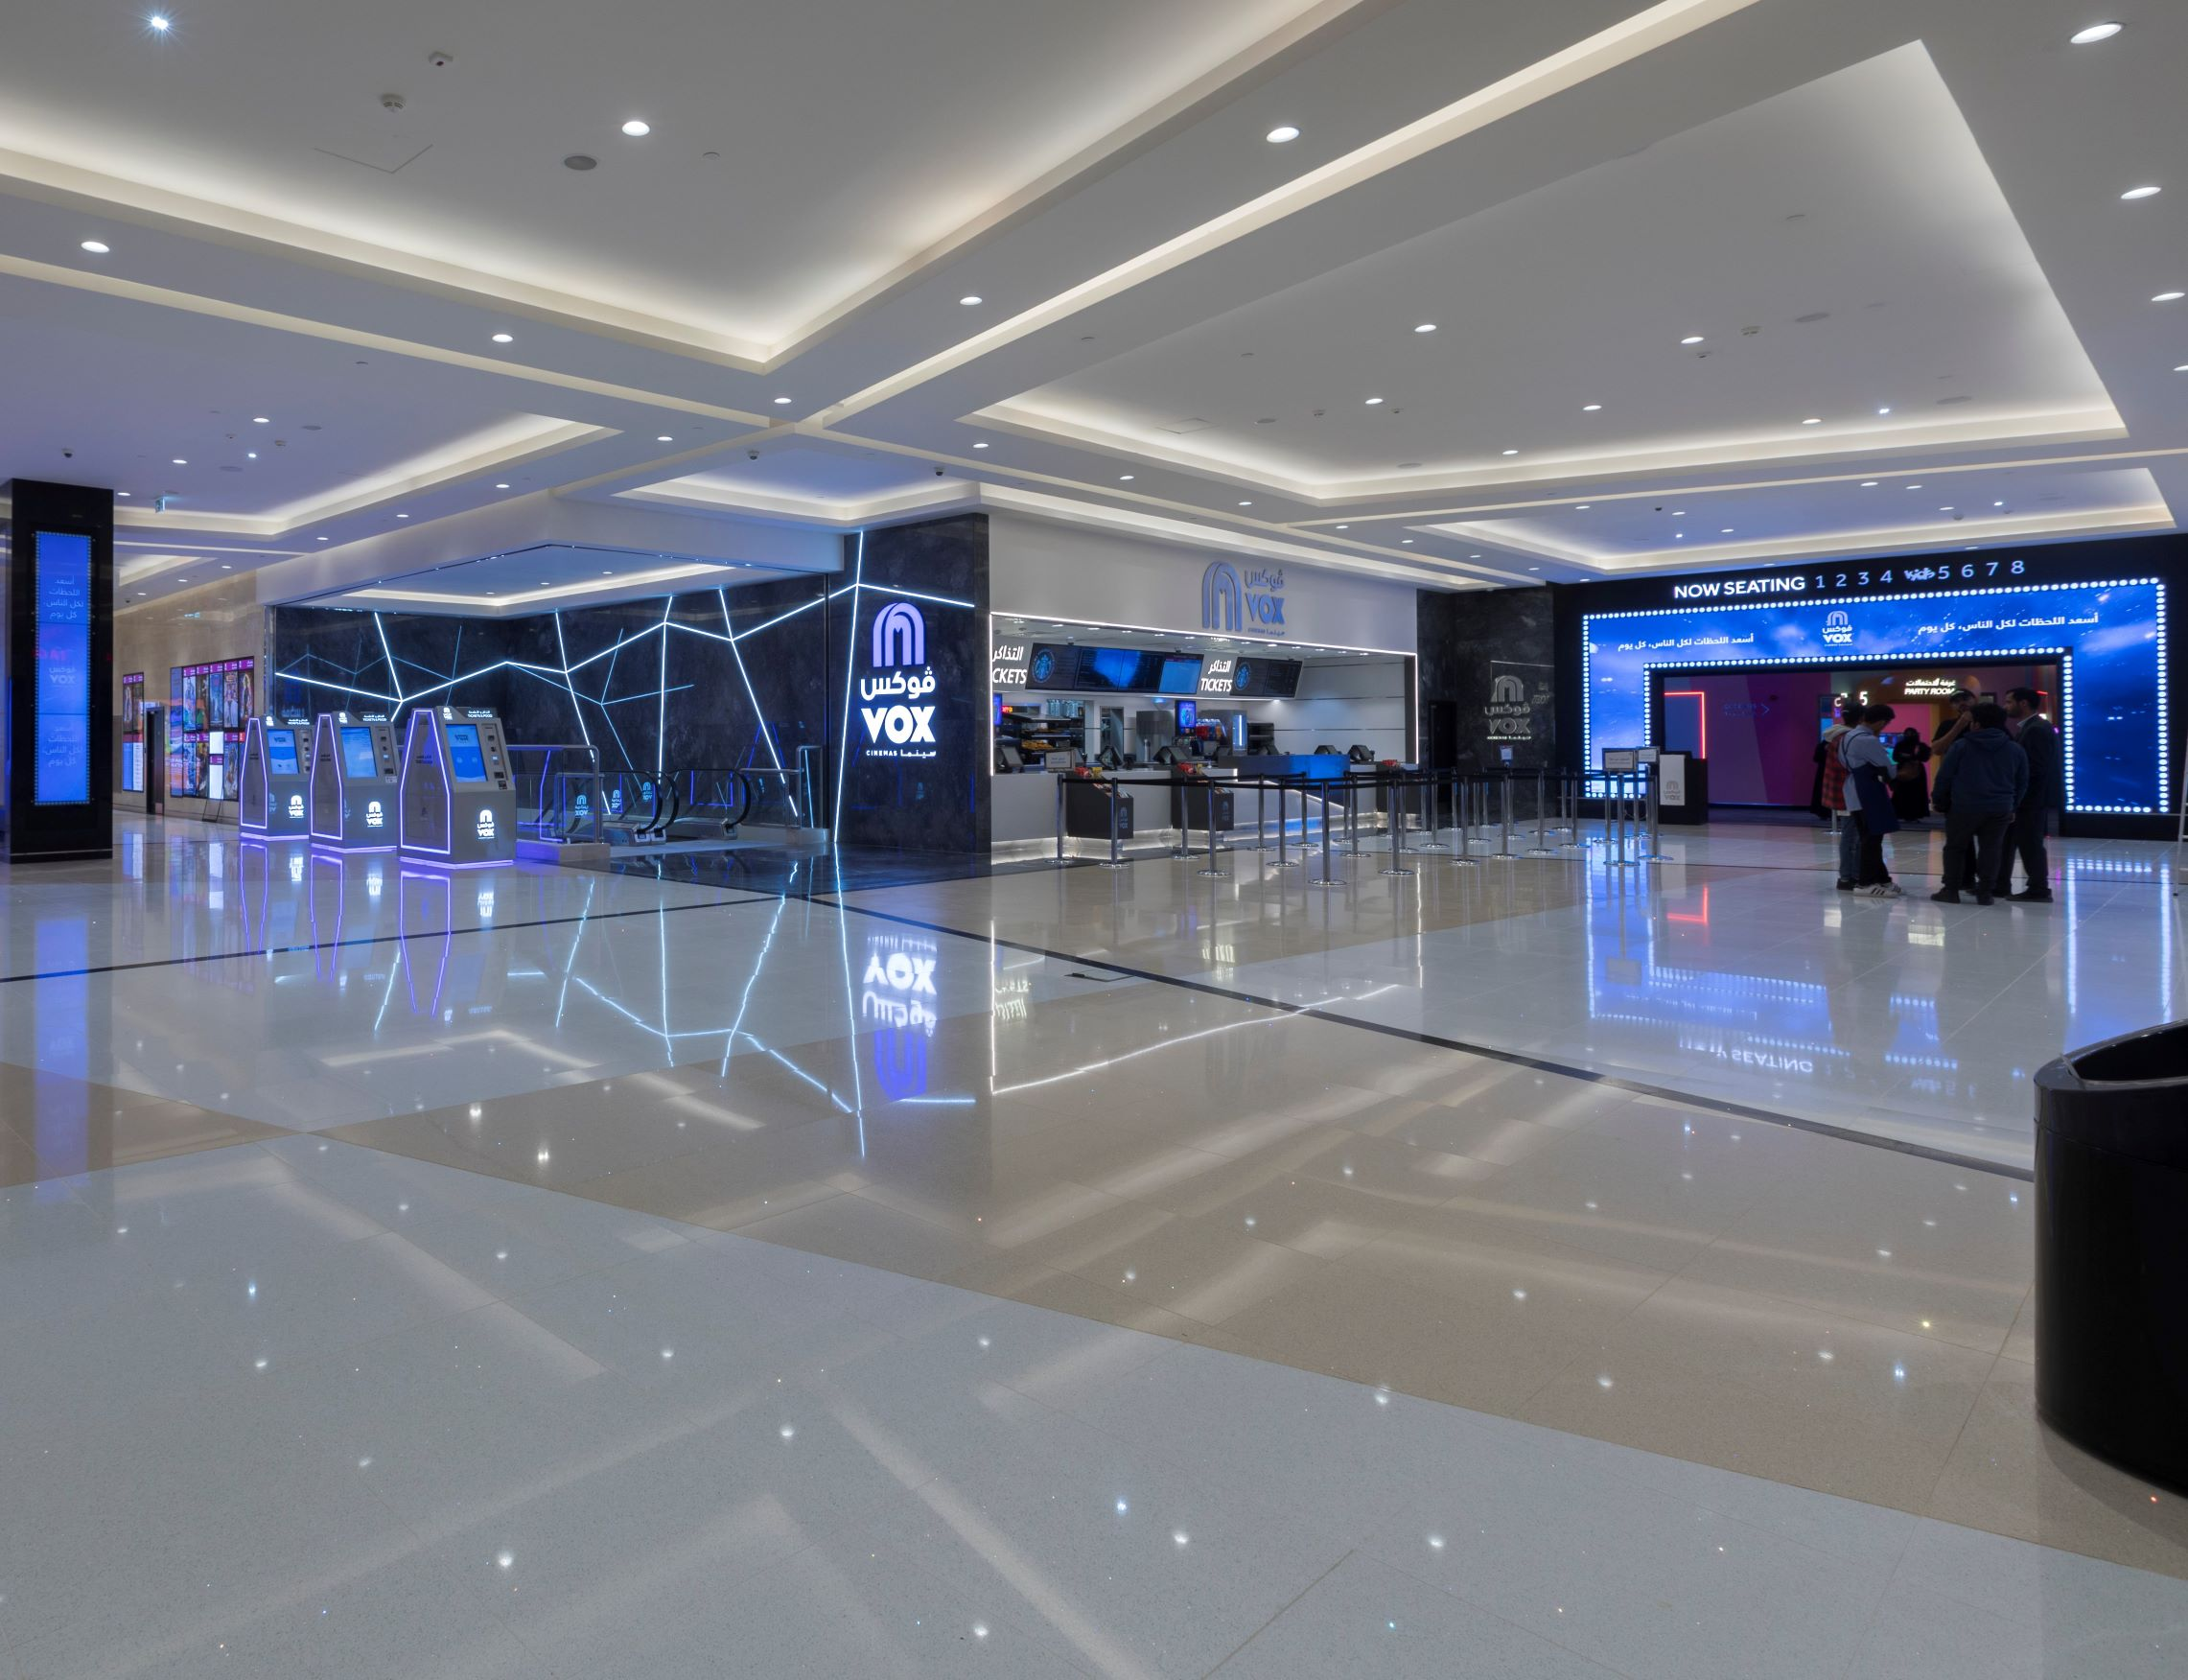 Majid Al Futtaim Opens VOX Cinemas Multiplex in The Roof